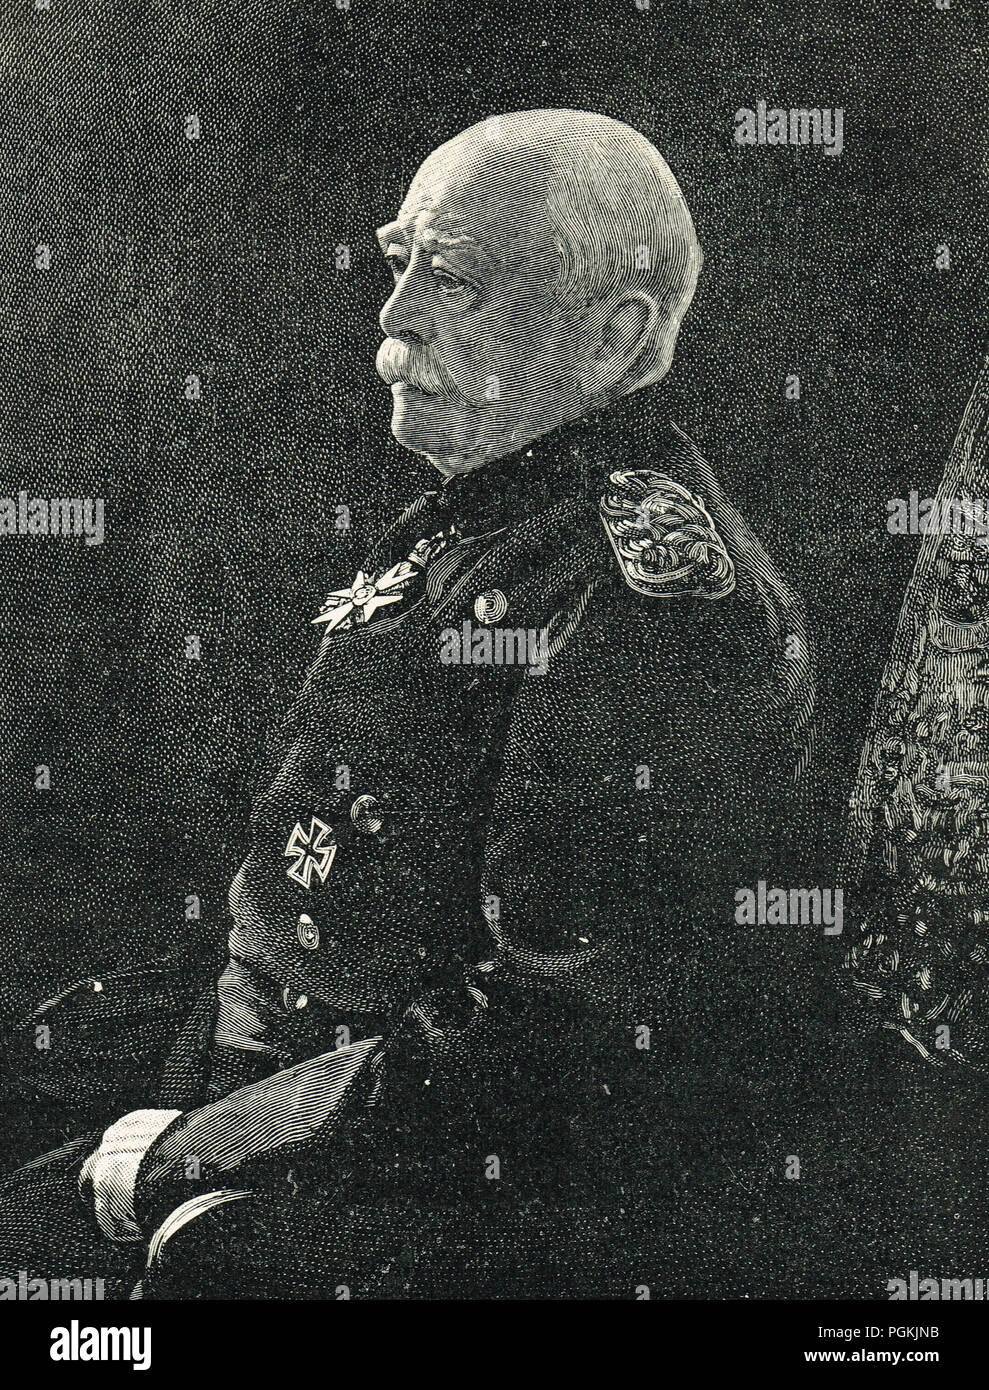 Otto von Bismarck, first Chancellor of the German Empire at age of Seventy Nine - Stock Image